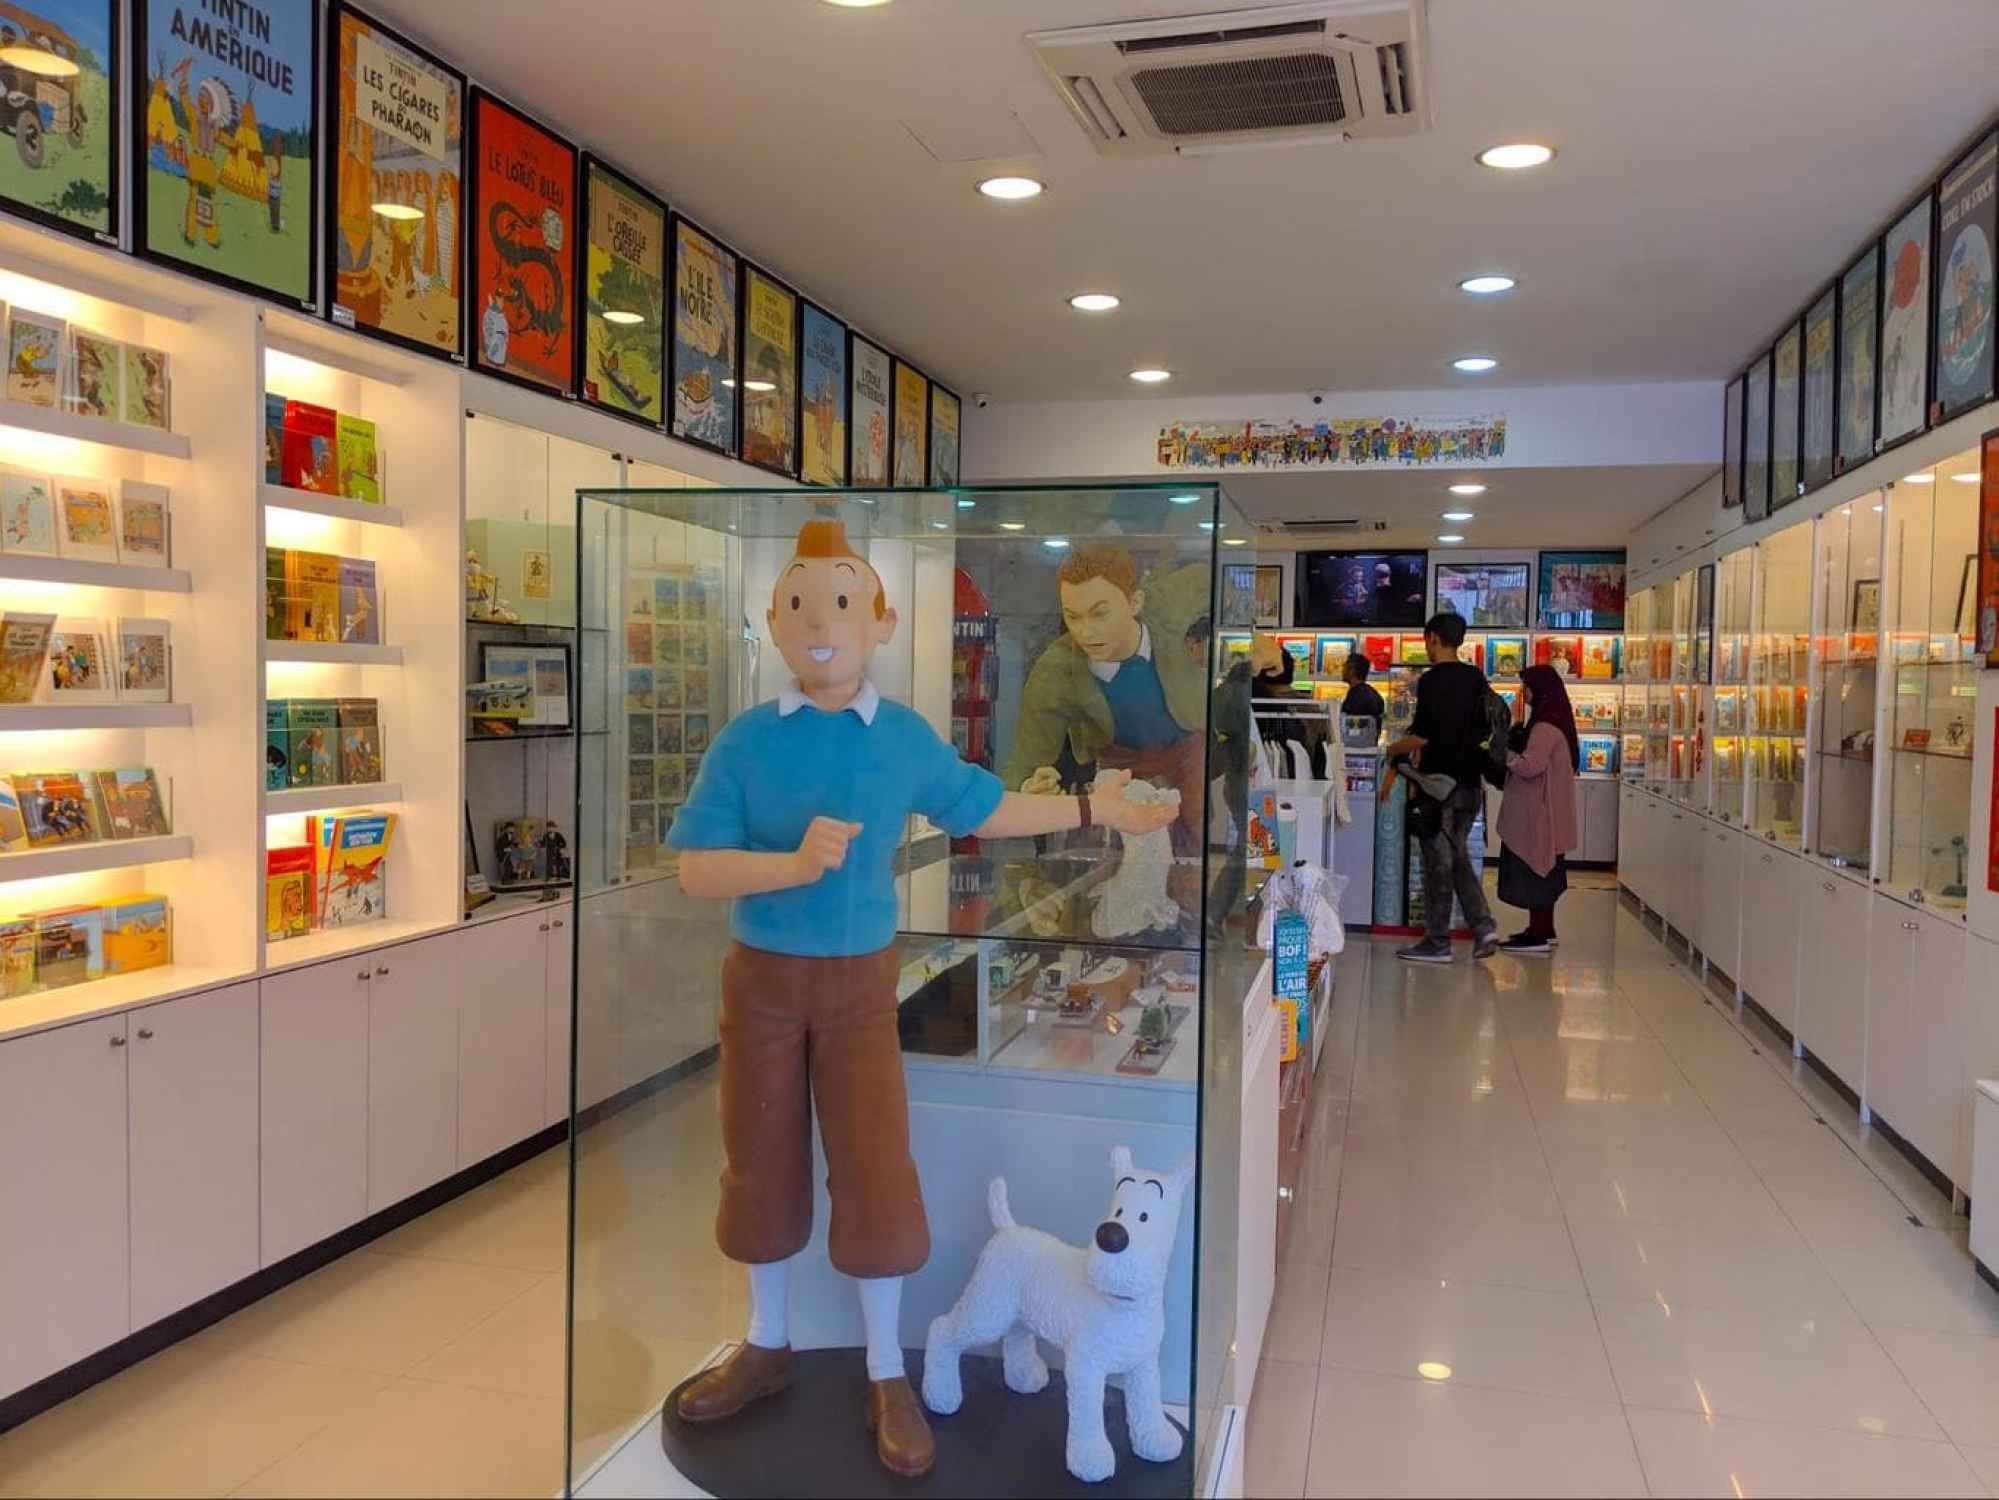 Tintin Shop interior